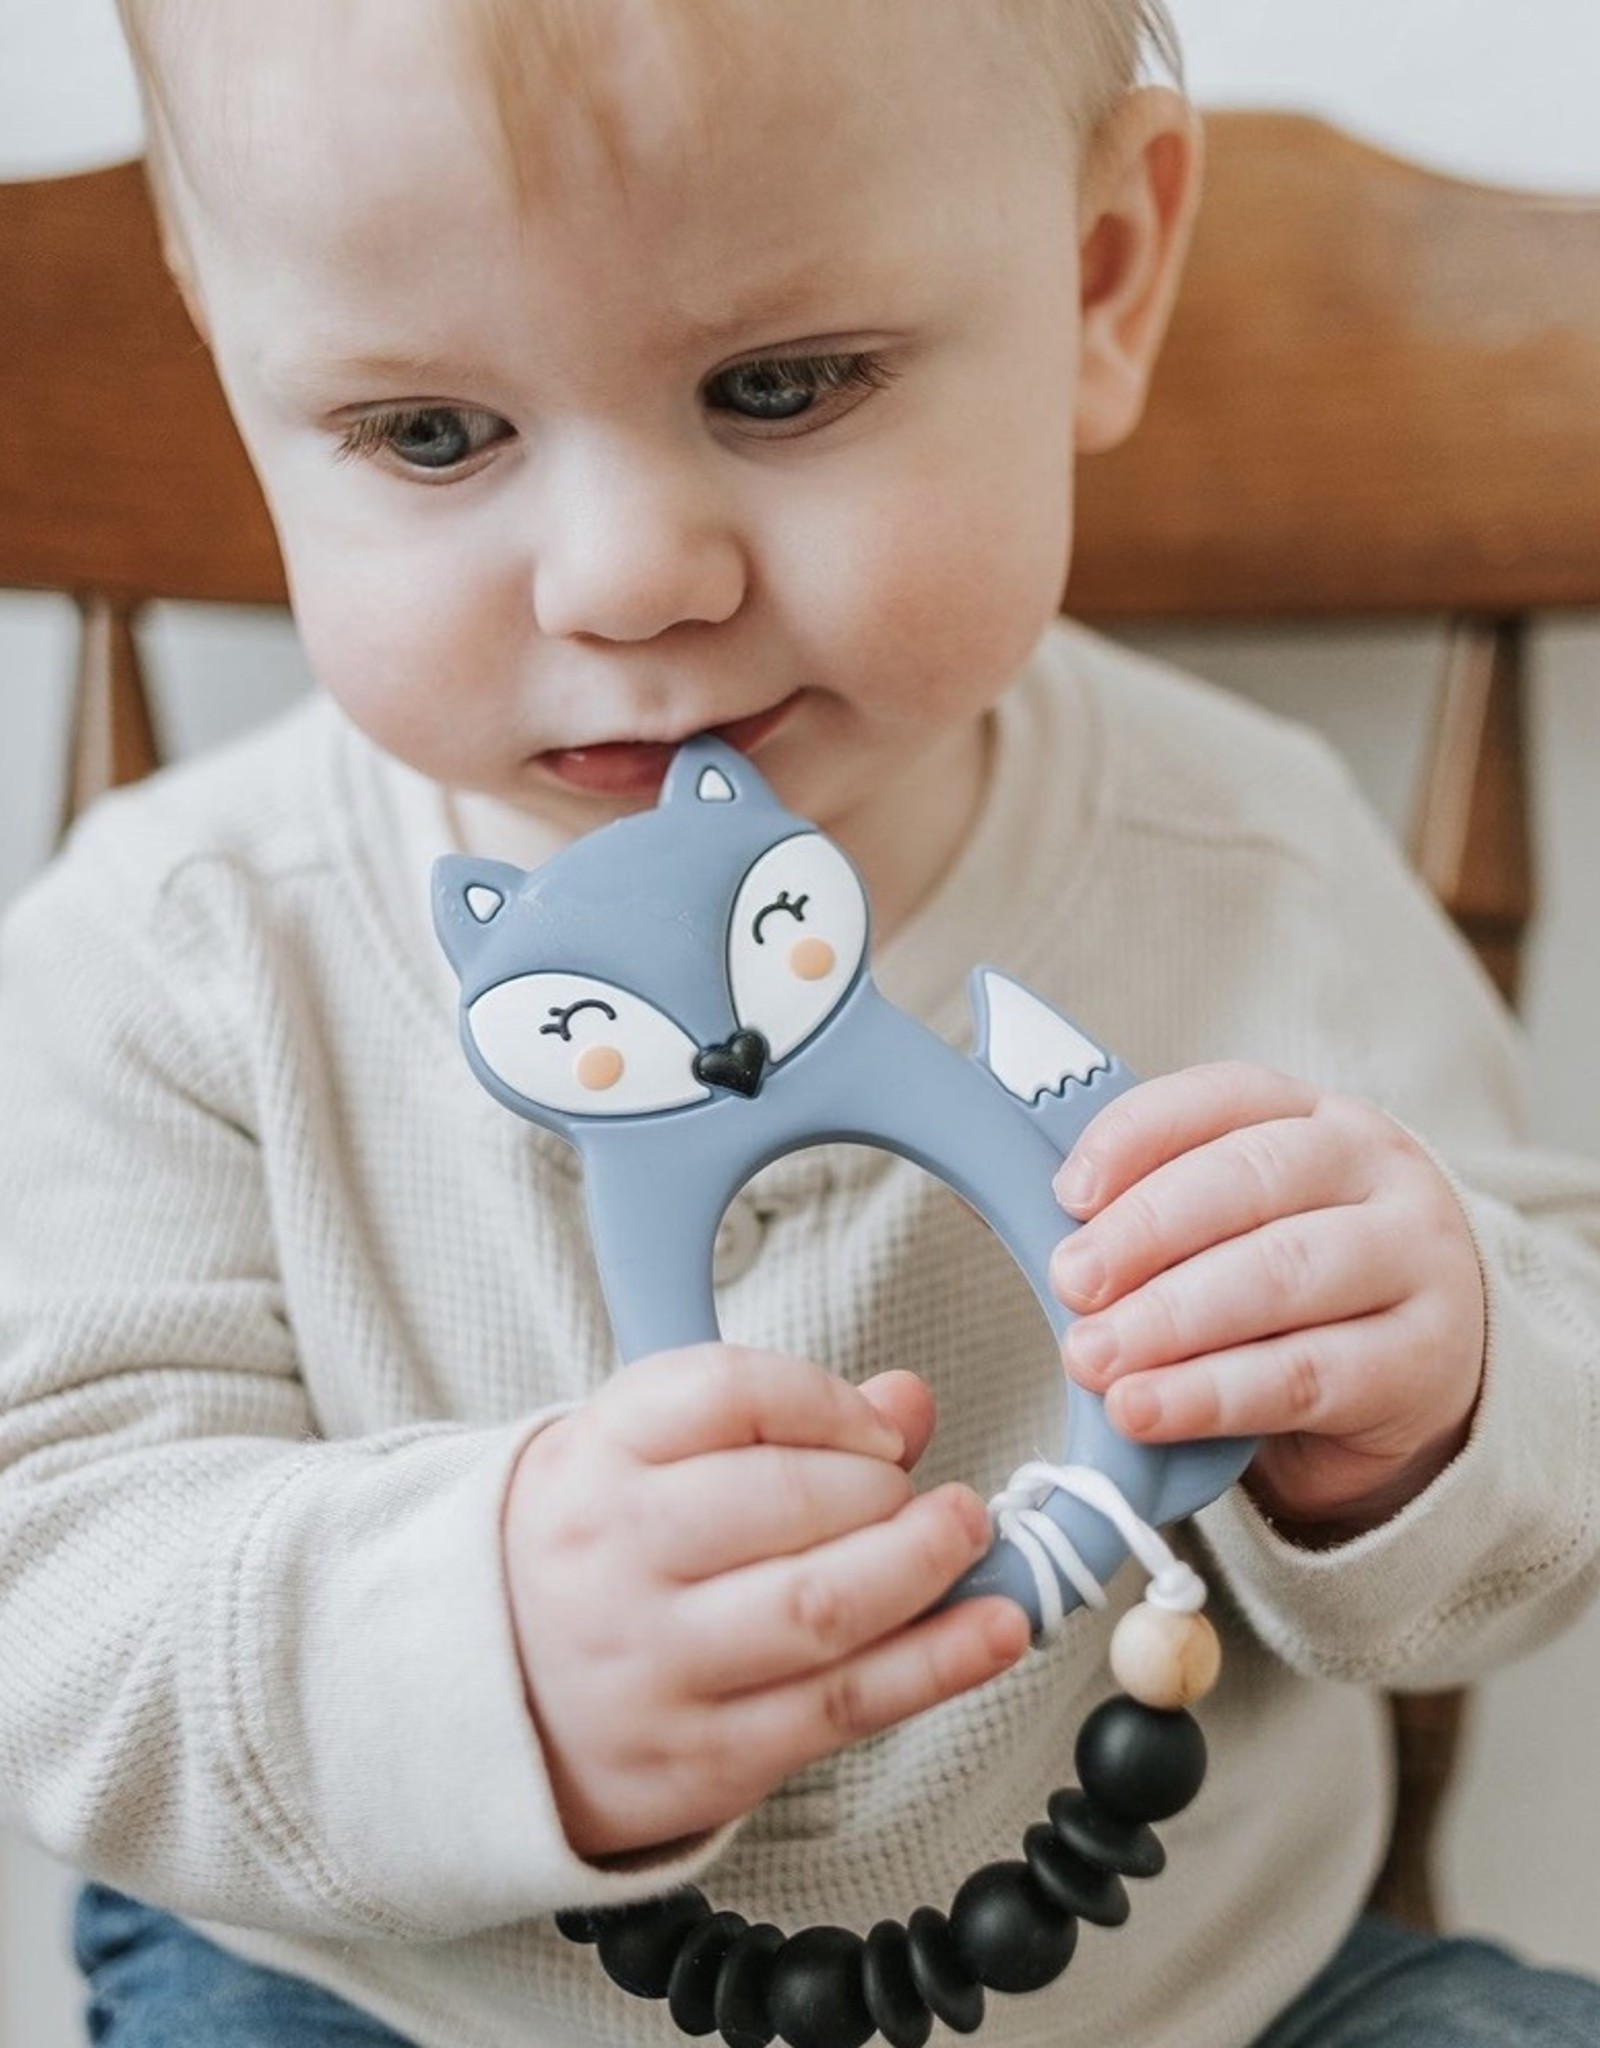 LITTLE CHEEKS Blue Fox SILICONE TEETHER